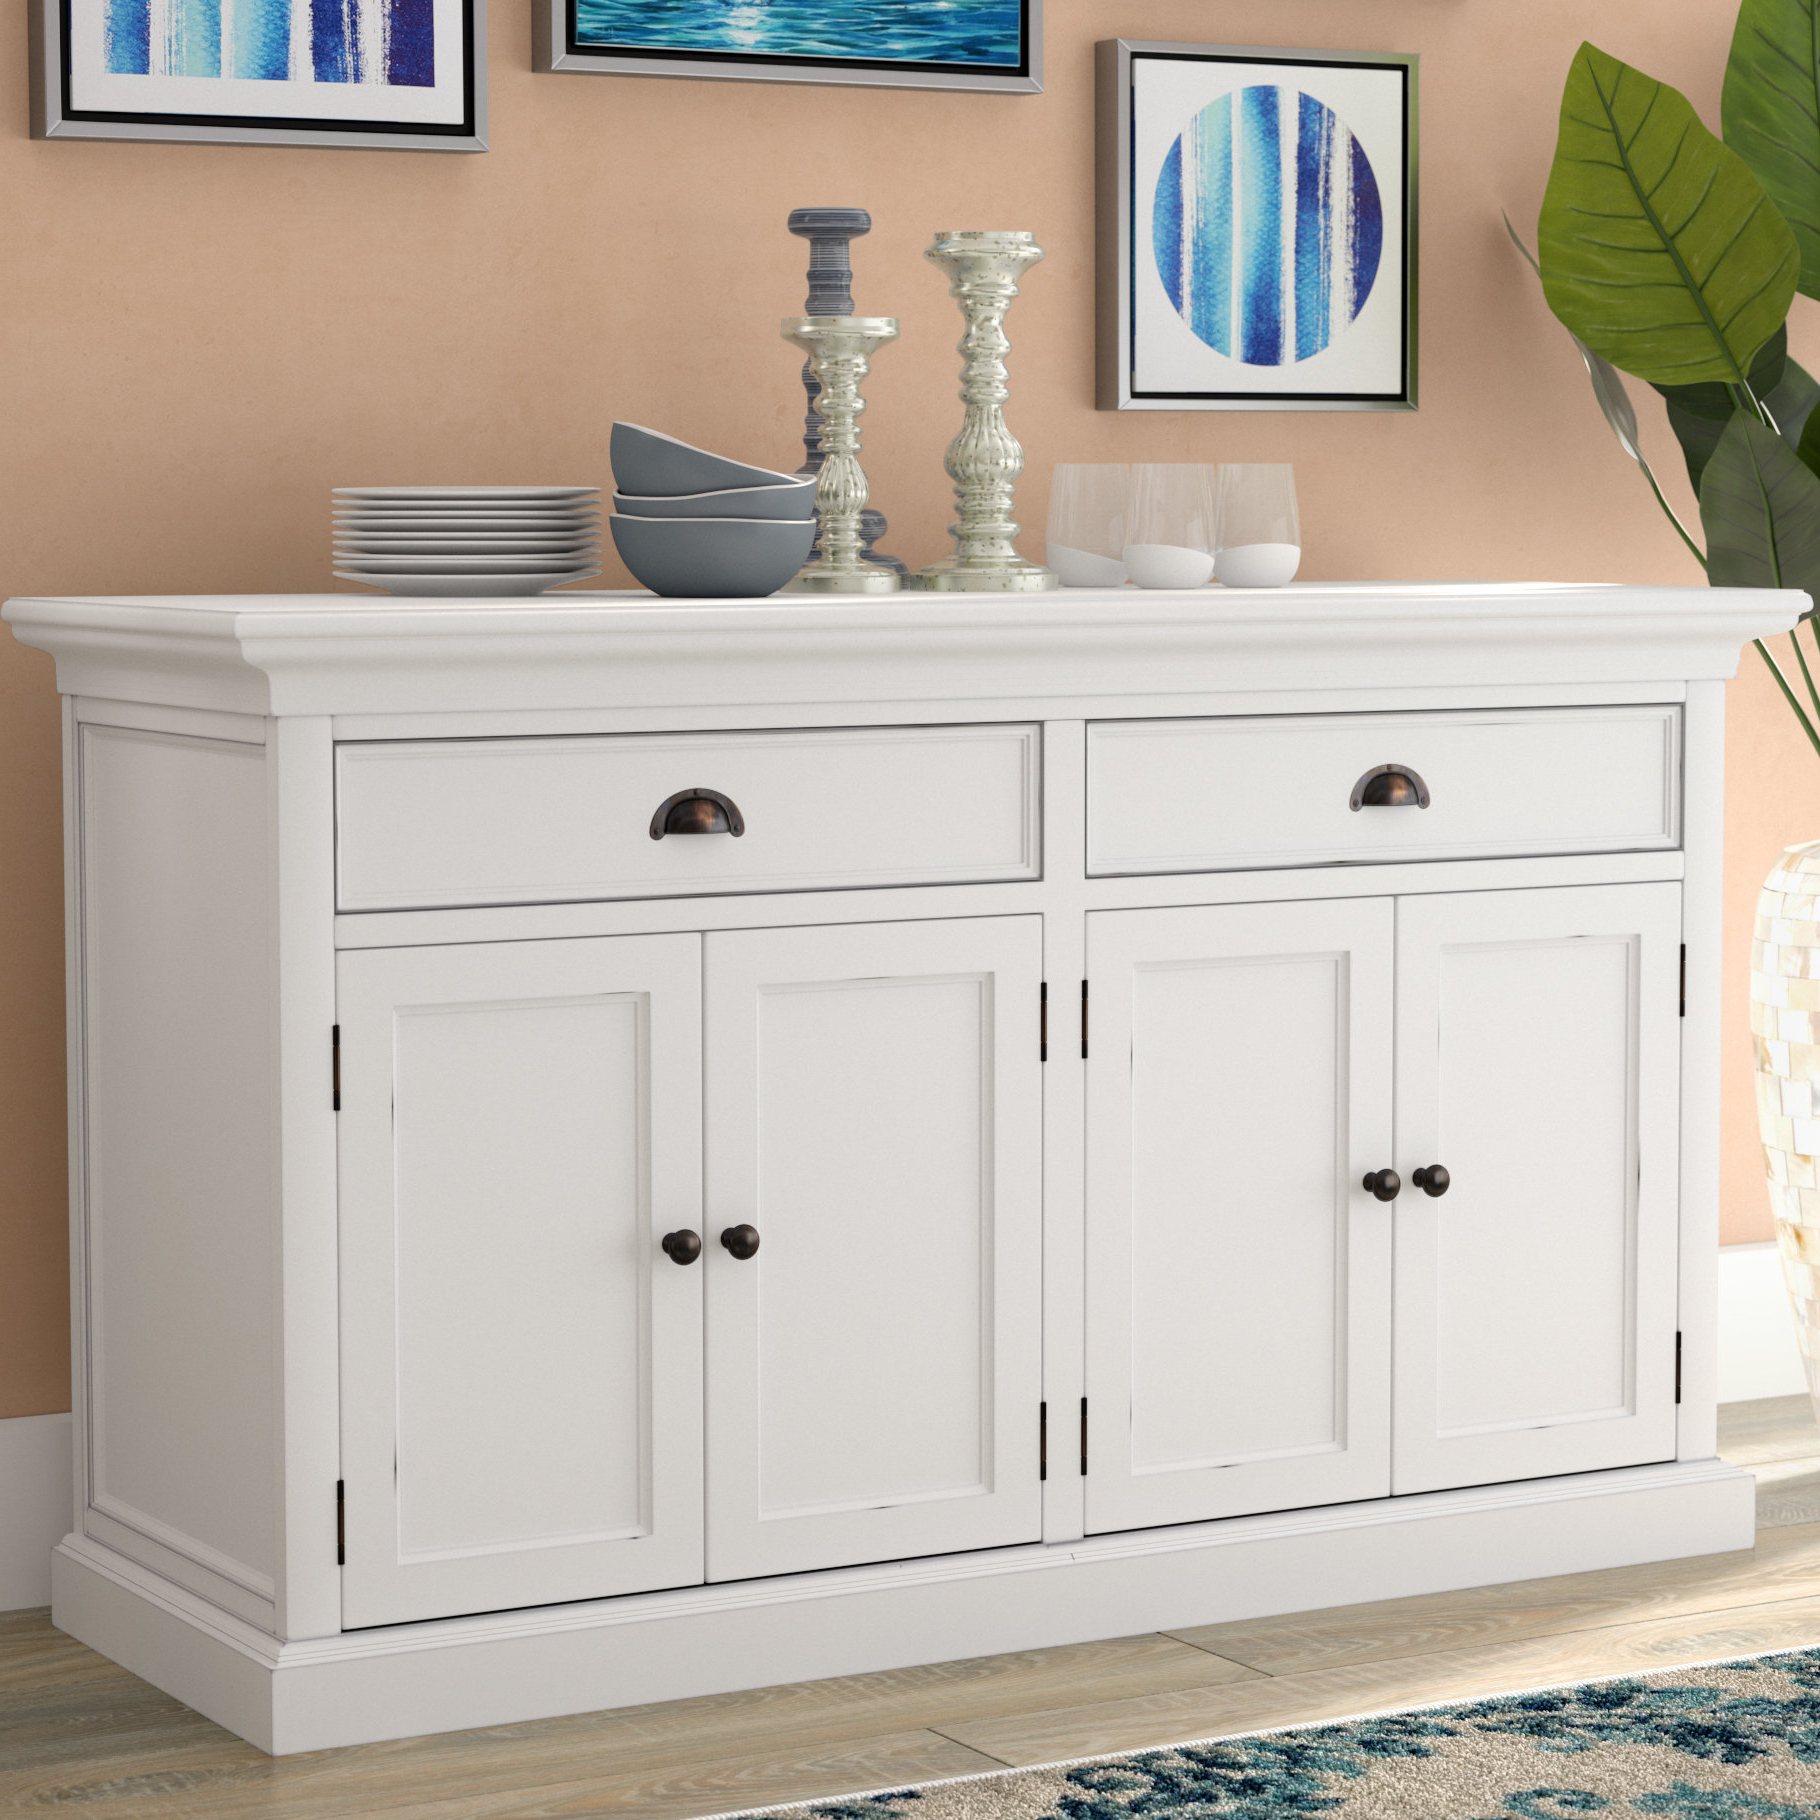 Beachcrest Home Amityville Wood Sideboard & Reviews | Wayfair With Regard To Amityville Sideboards (View 2 of 20)